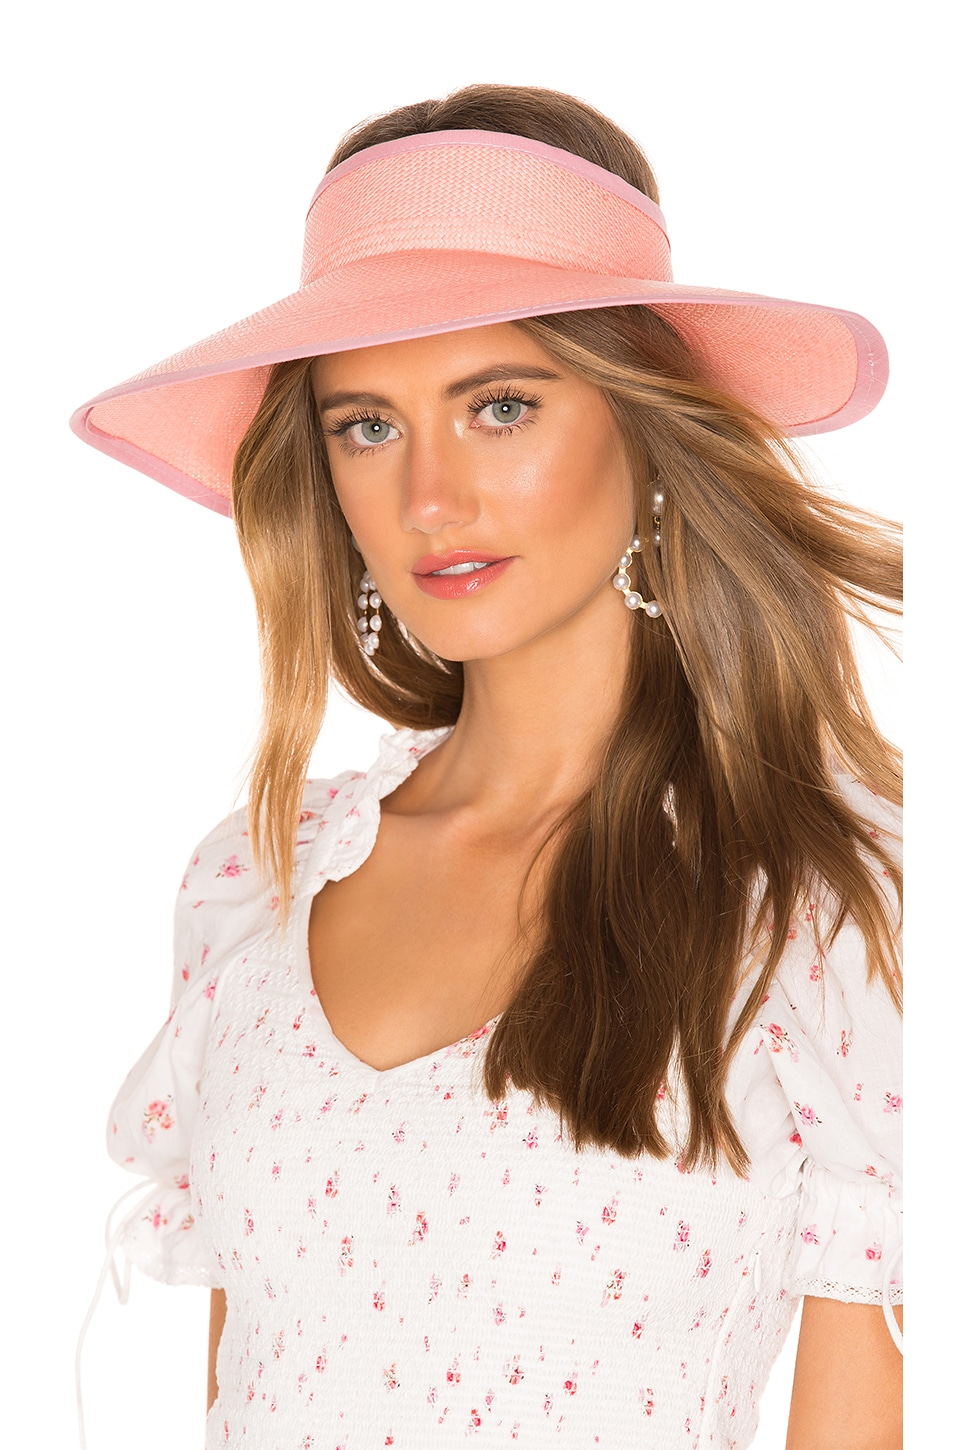 SENSI STUDIO Long Brim Visera Visor in Rose & Rose